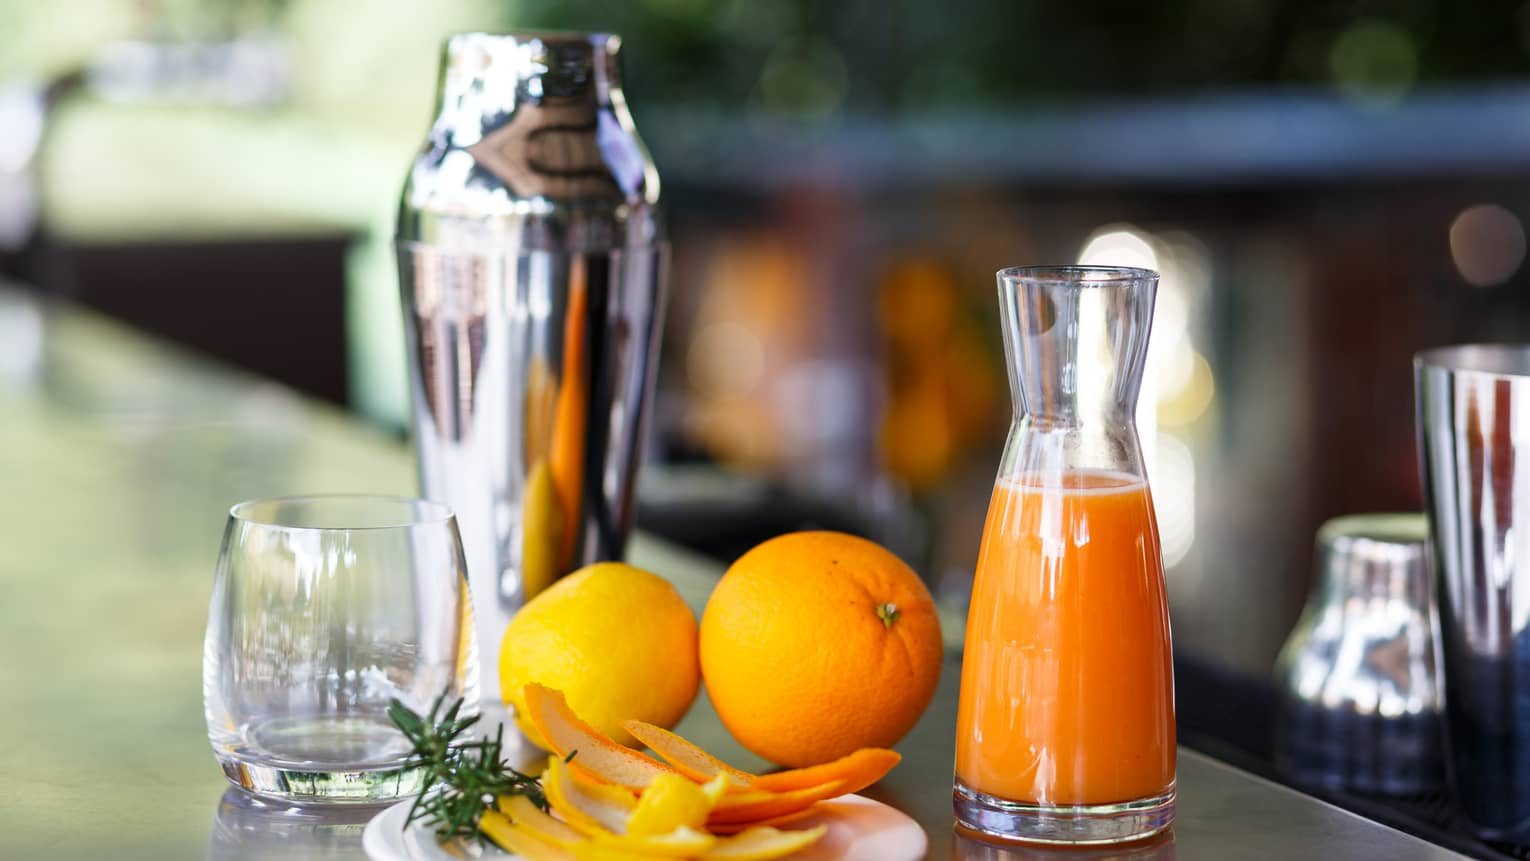 Orange Smoothie in glass jug on bar with fresh oranges, orange peels, stainless steel cocktail shaker